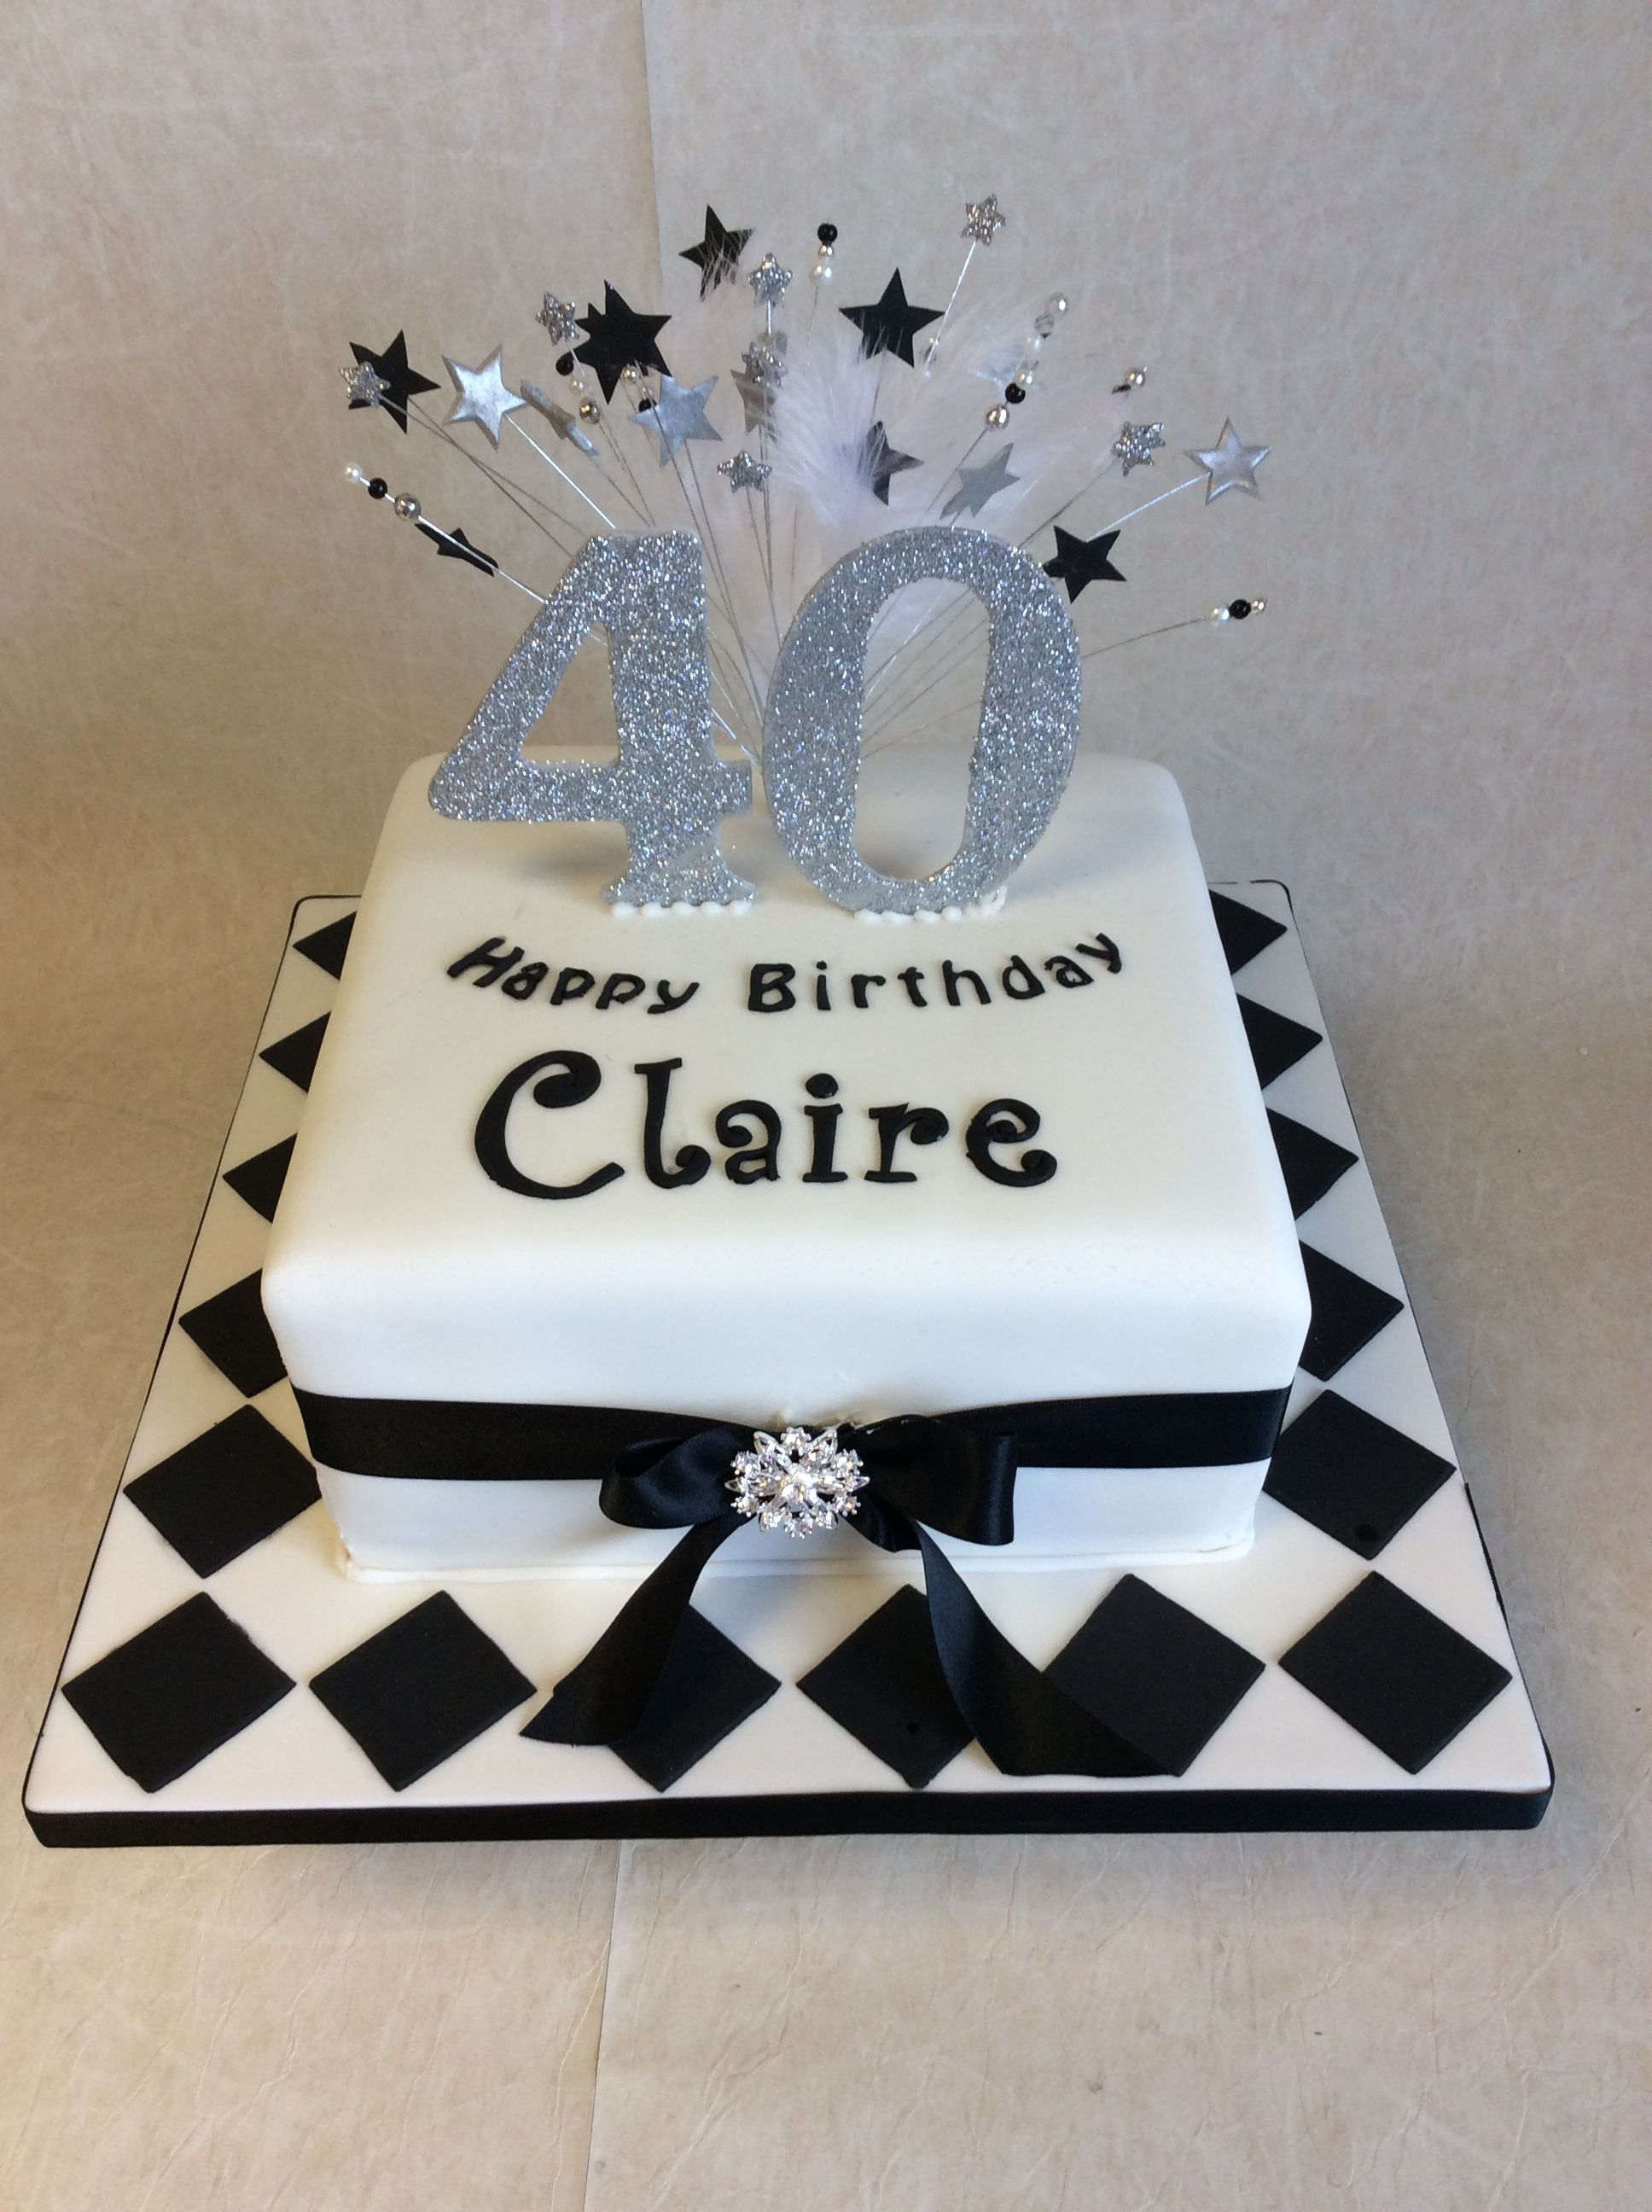 40th Birthday Cake Ideas.Black White With Silver 40th Birthday Cake In 2019 40th